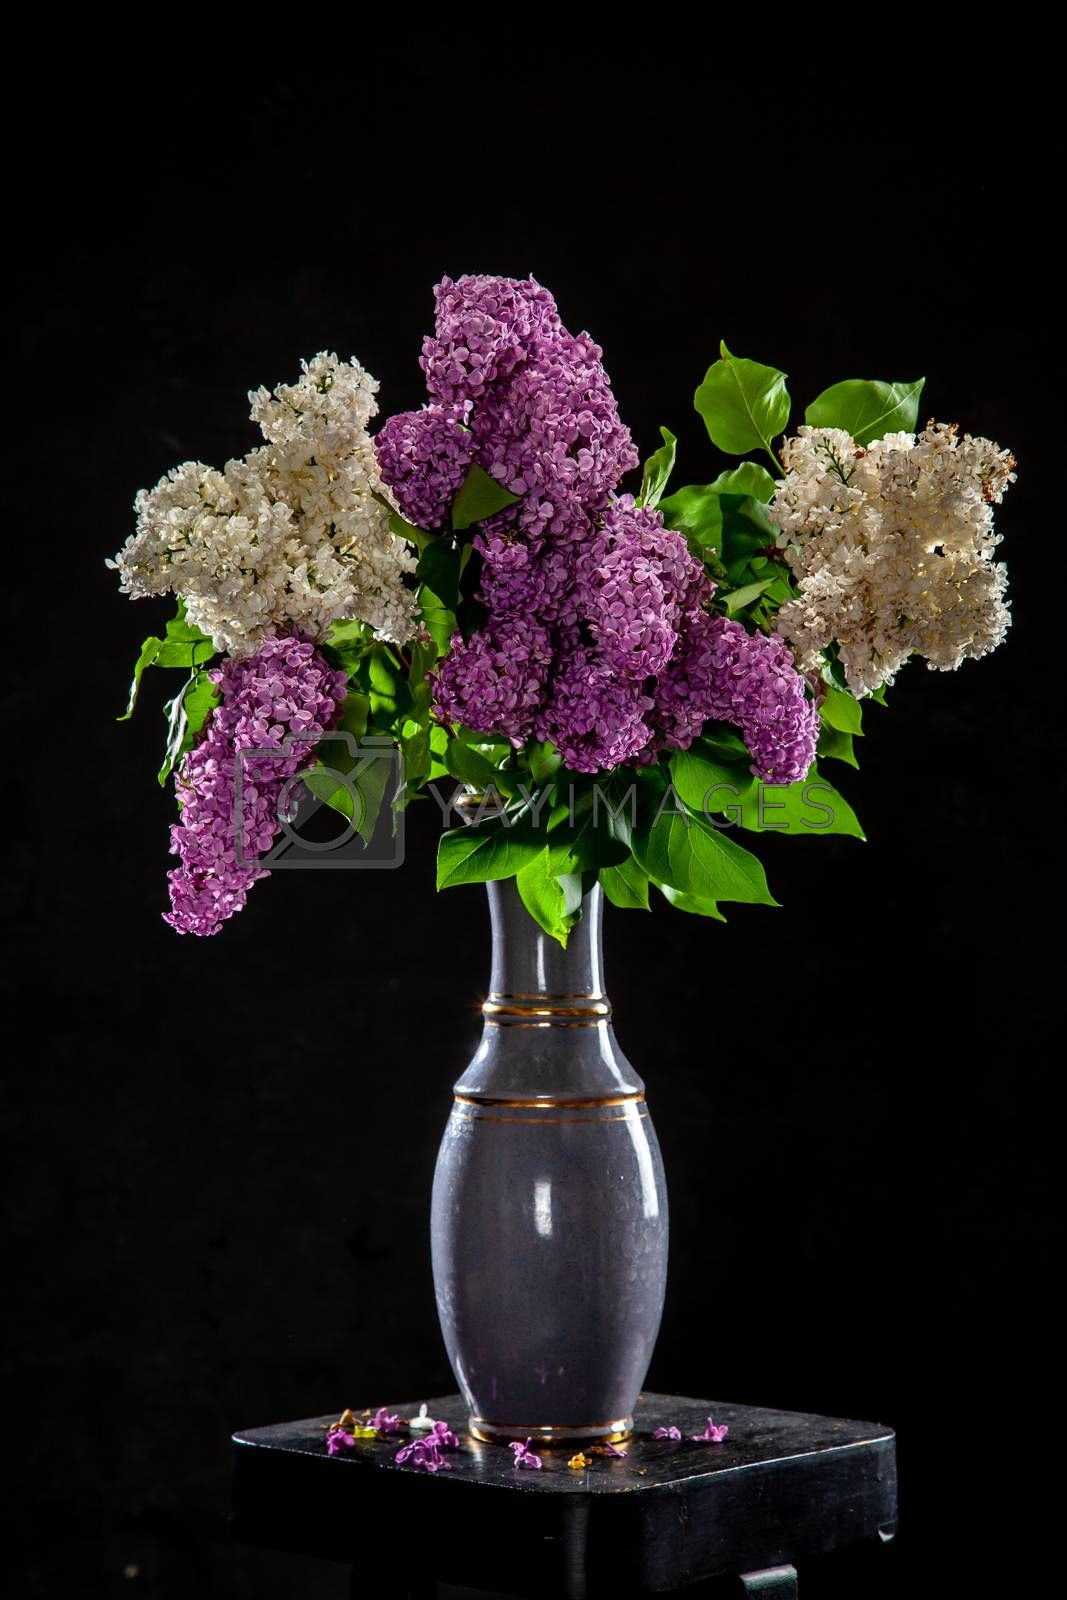 White and purple branches of lilac in vase on black background. Spring branch of blooming lilac on the table with black background. Fallen lilac flowers on the table.